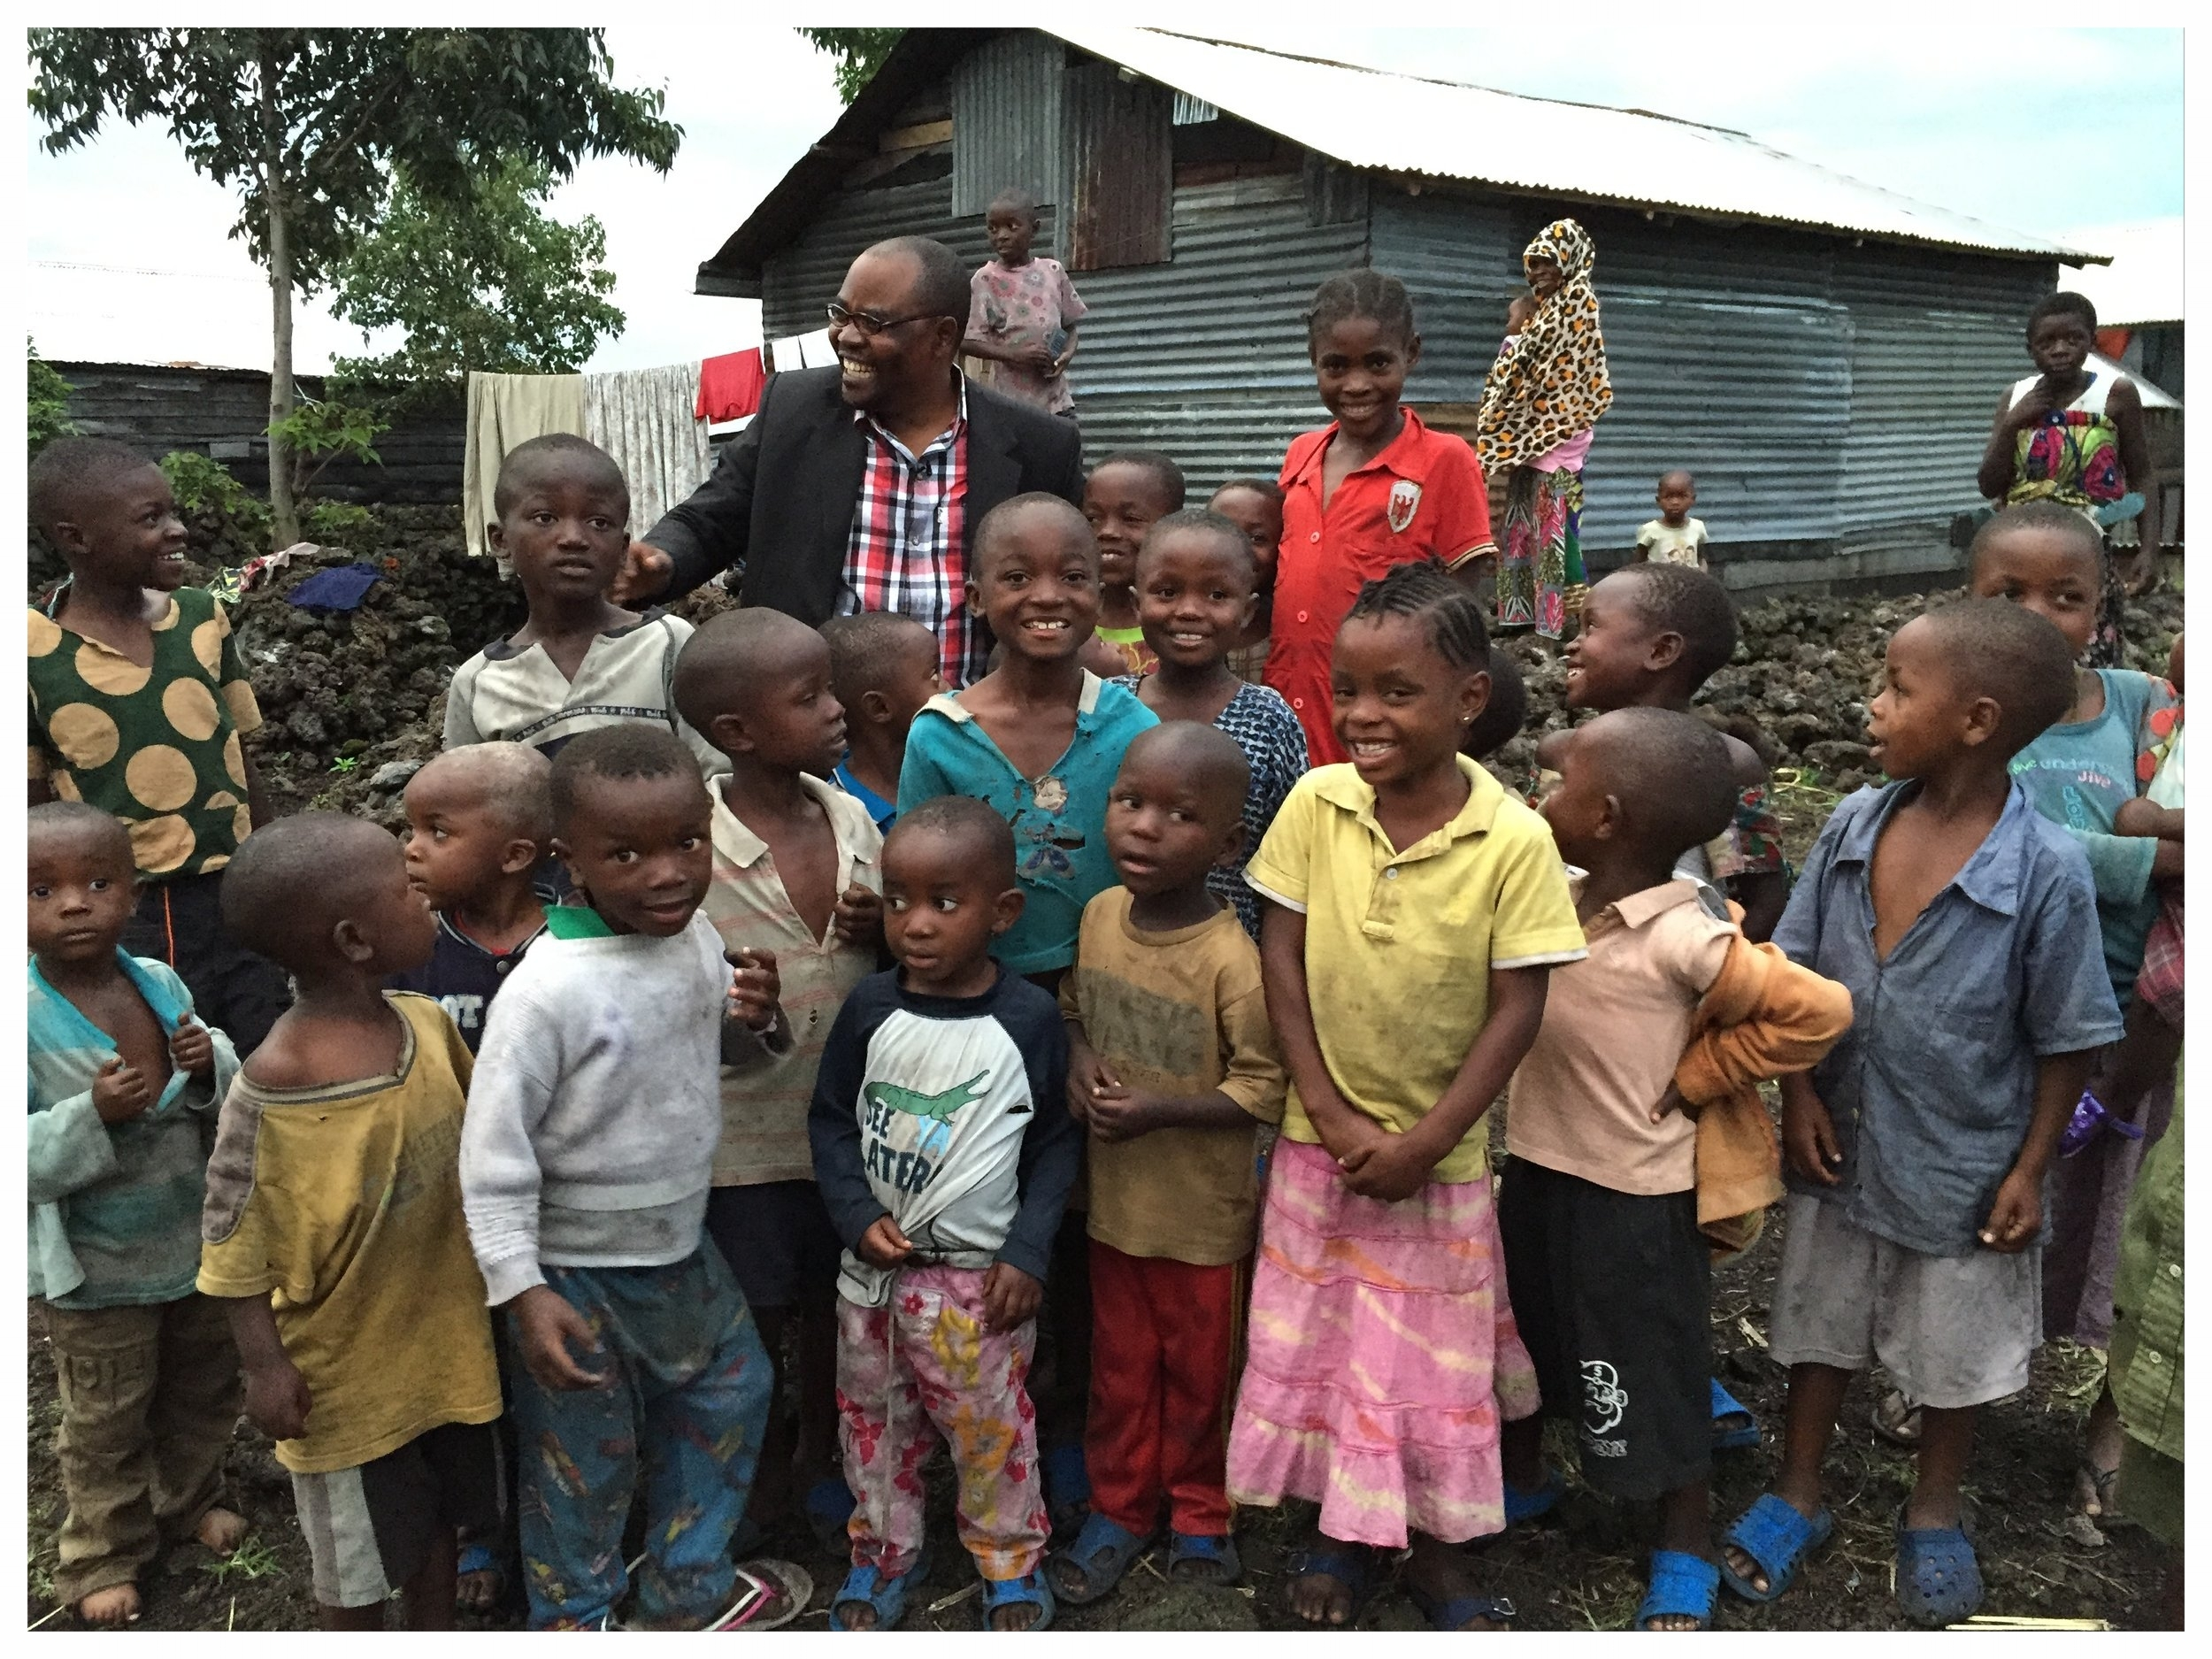 Fidel Bafilemba, our founder, in Goma with some of the children who will eventually benefit from the LCL programs. Read more about Fidel  HERE .